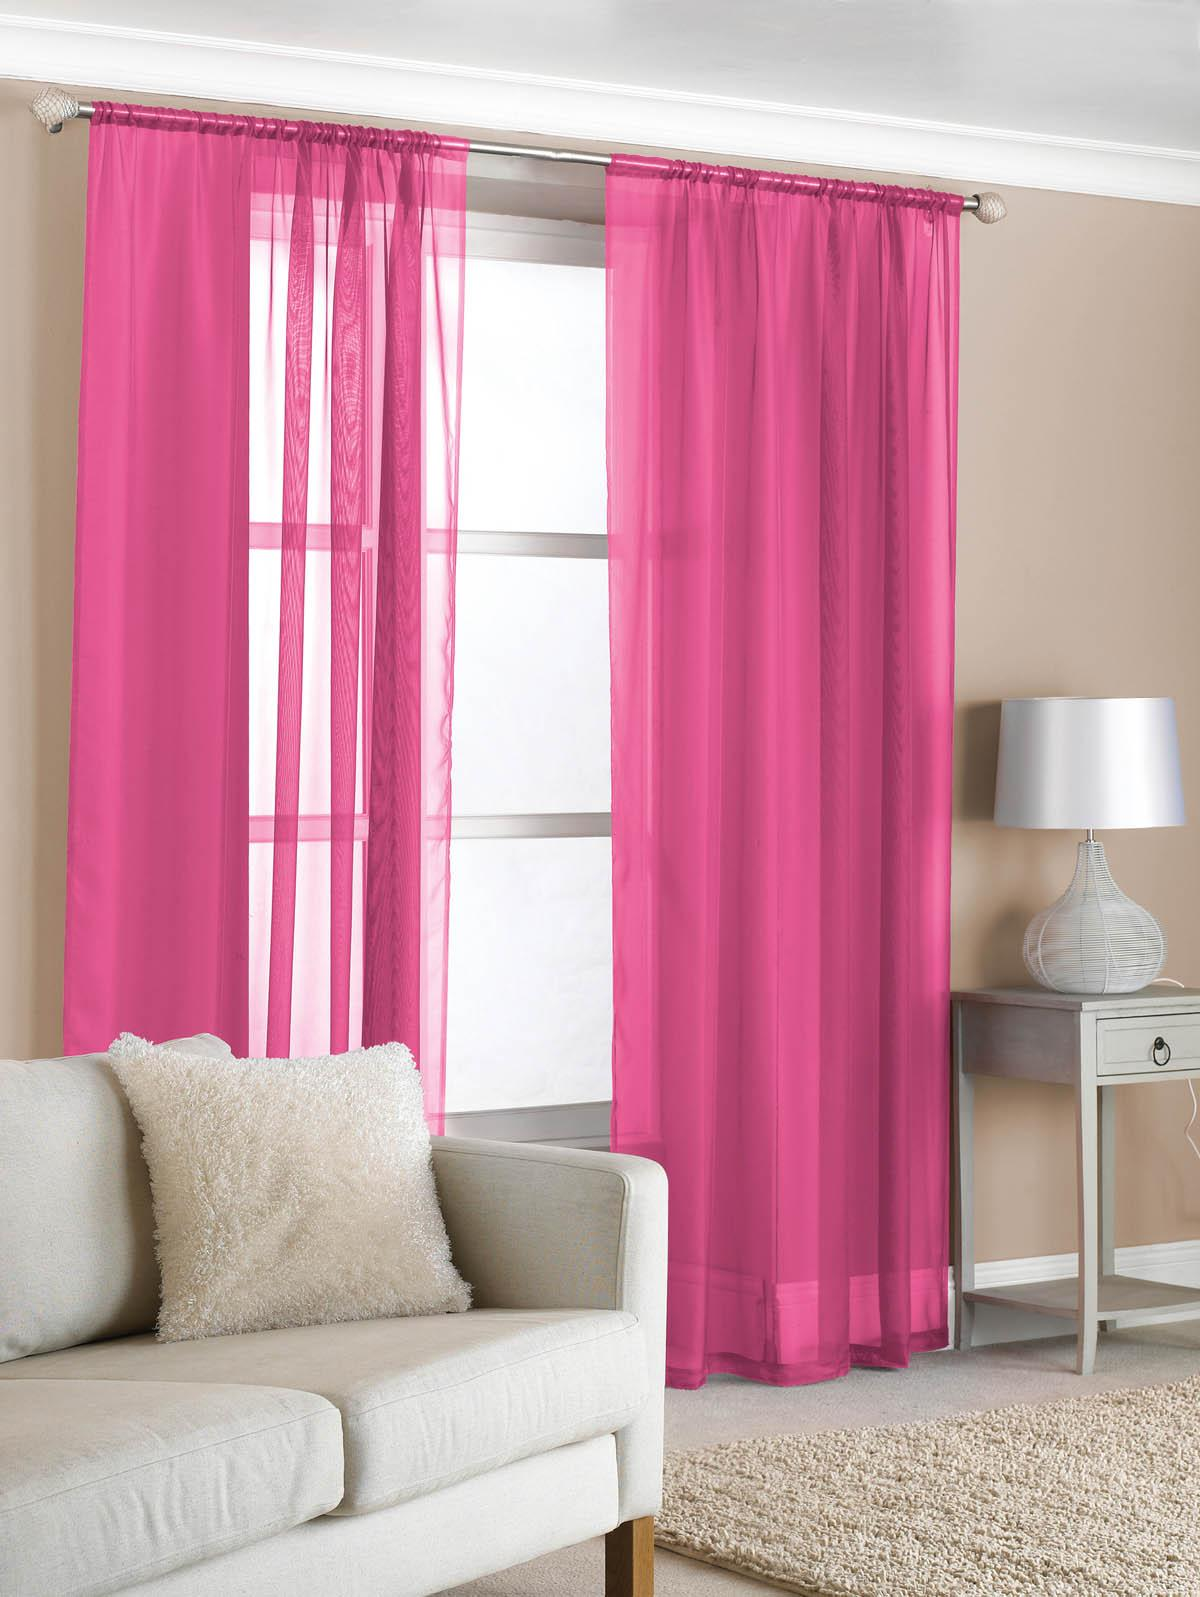 Hot pink curtains 108 inches - Slot Top Voile Pair